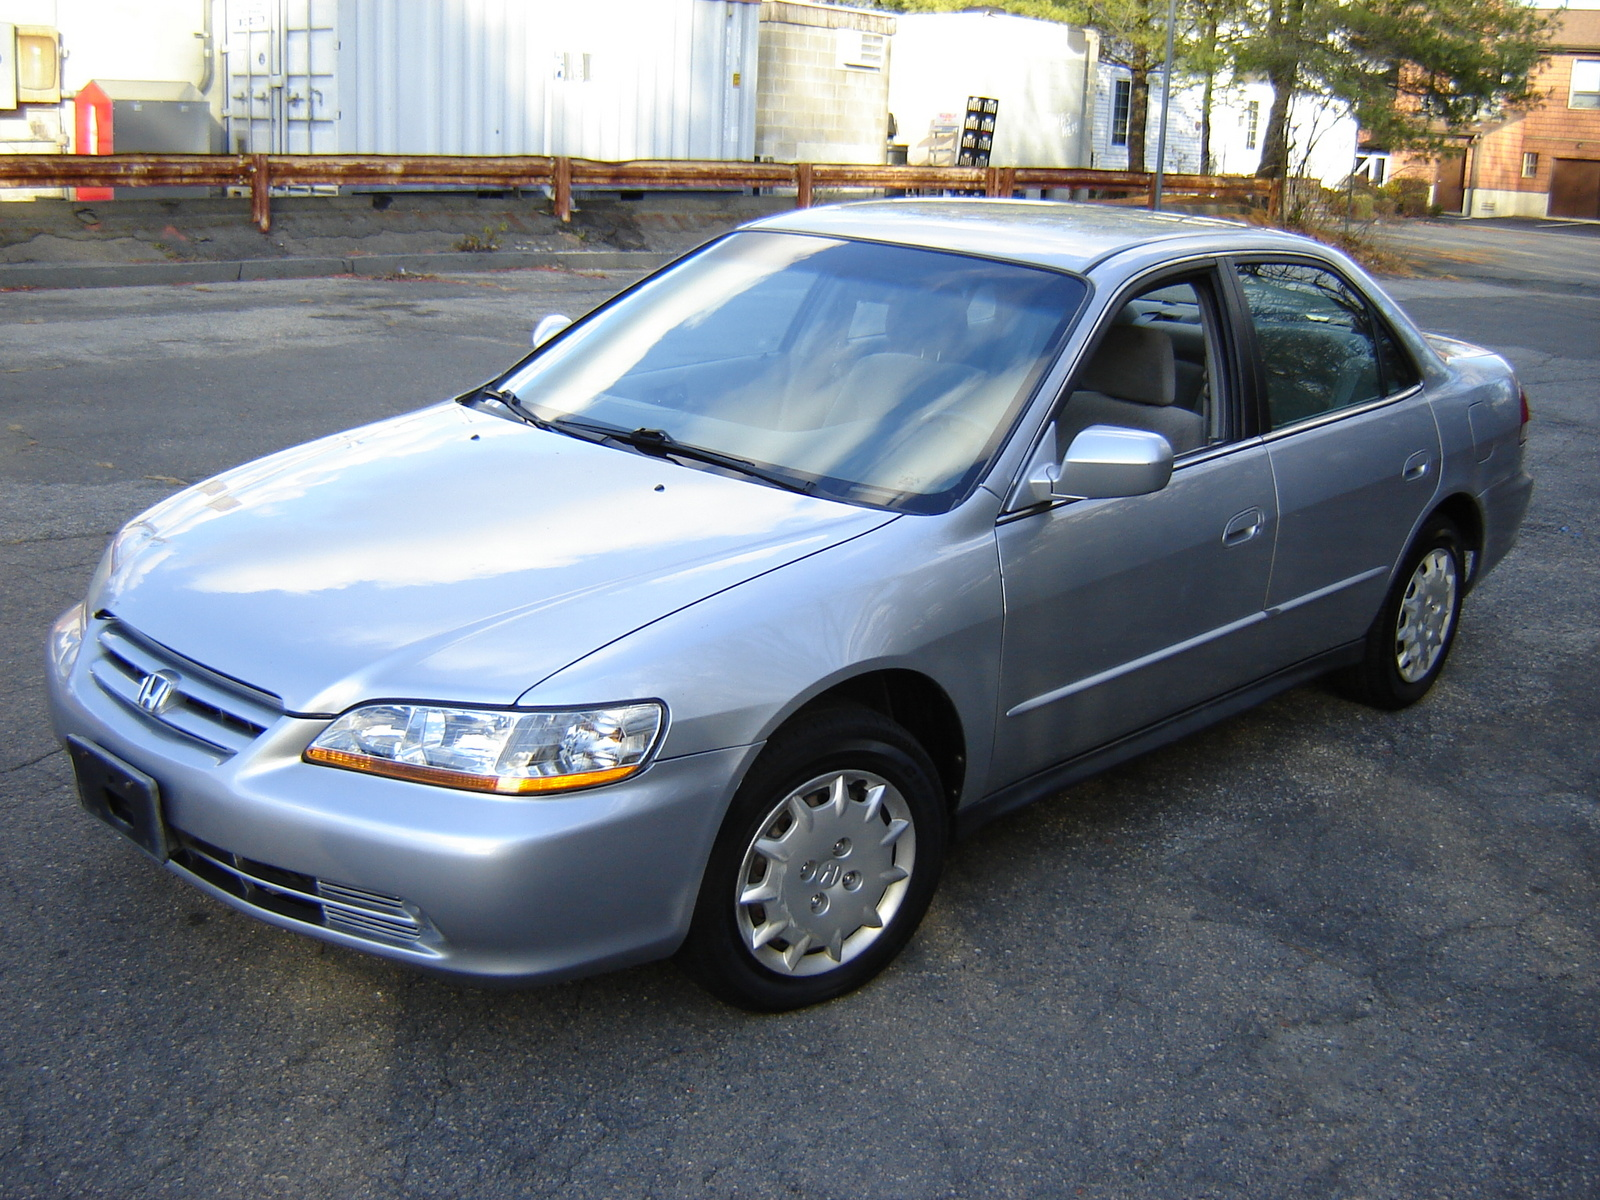 Honda Accord 2.4 2002 photo - 8